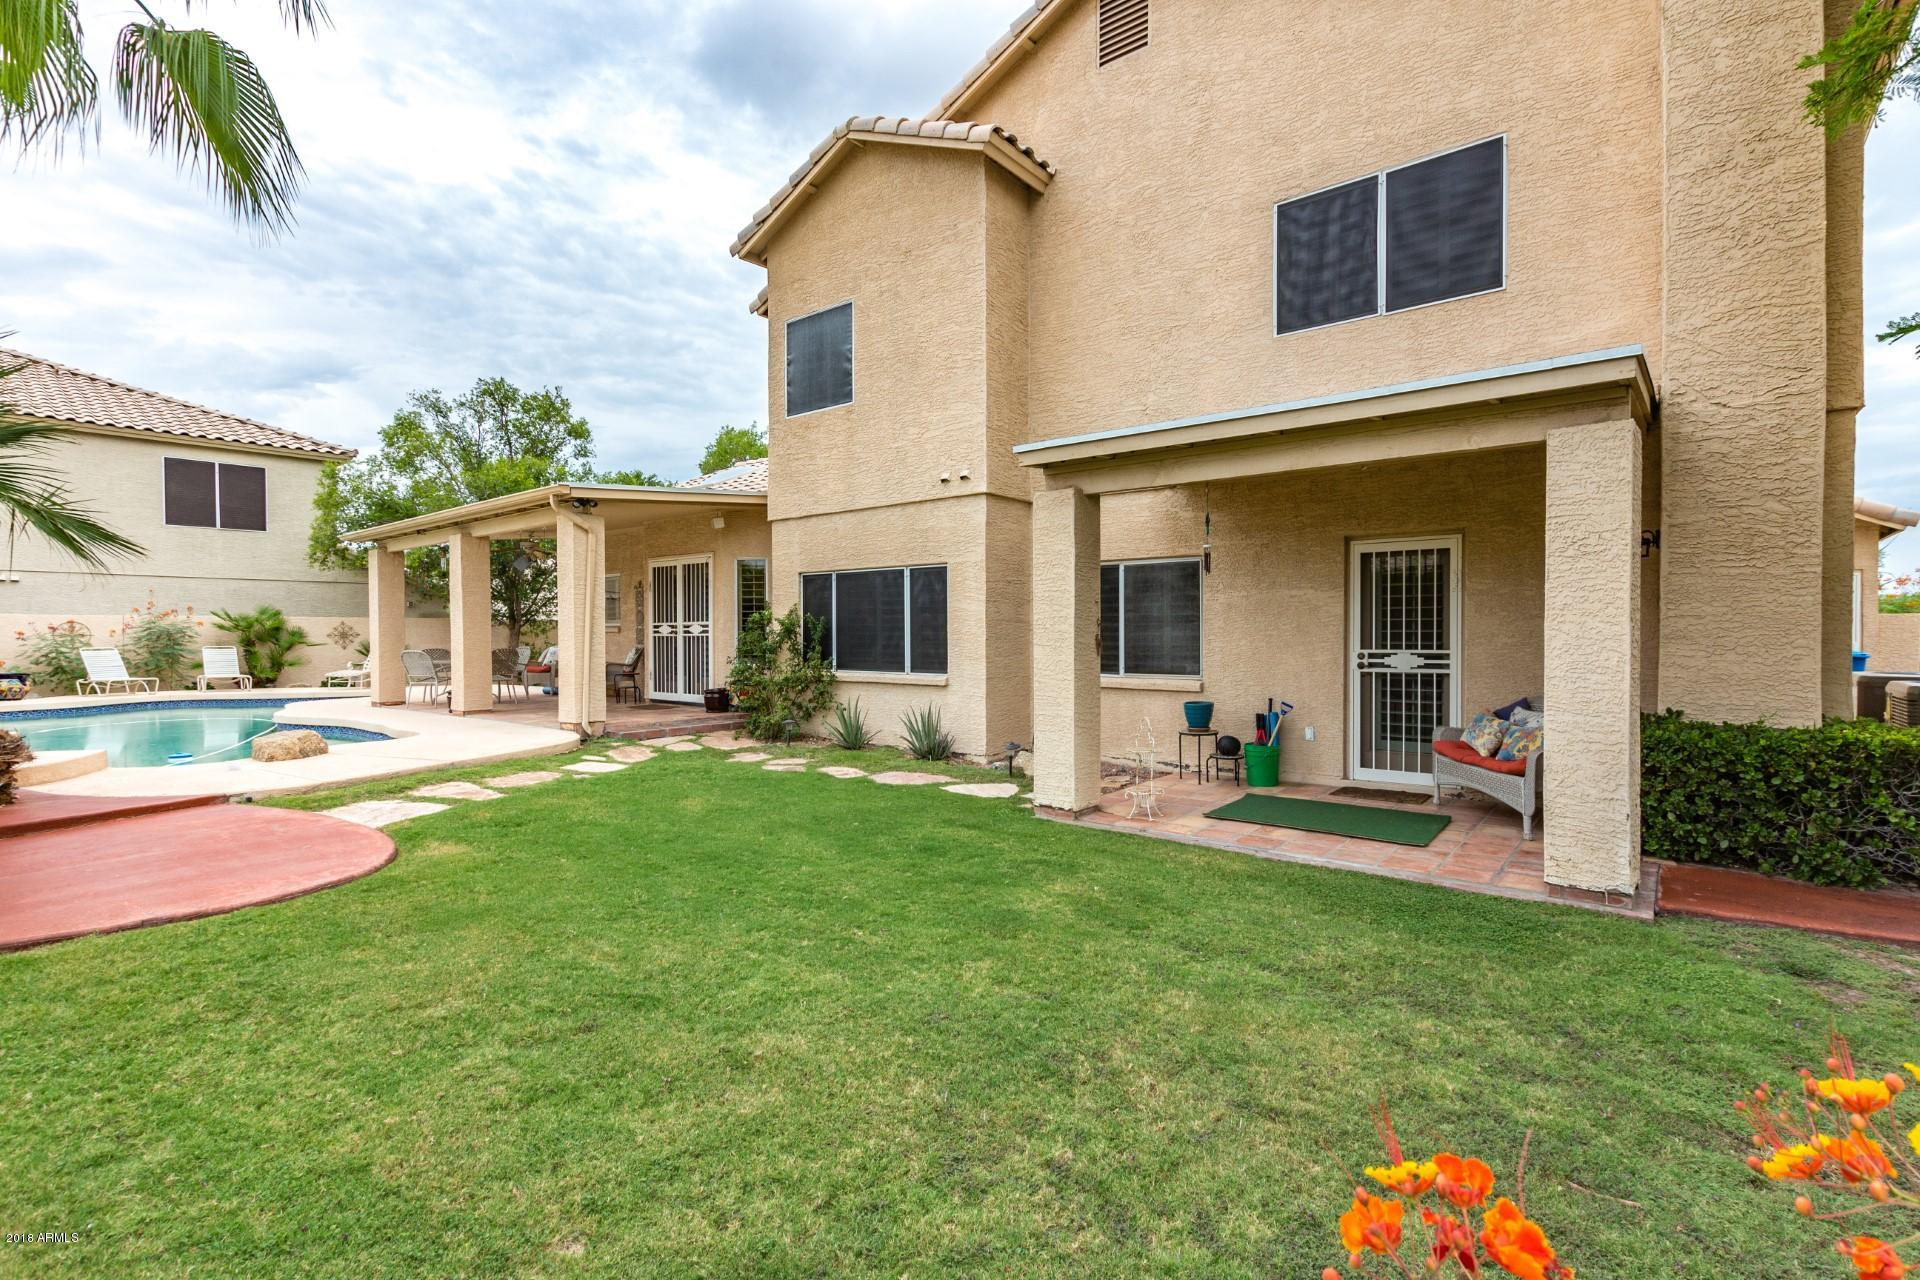 MLS 5823226 14231 N 17TH Place, Phoenix, AZ Phoenix AZ Pointe Tapatio Golf